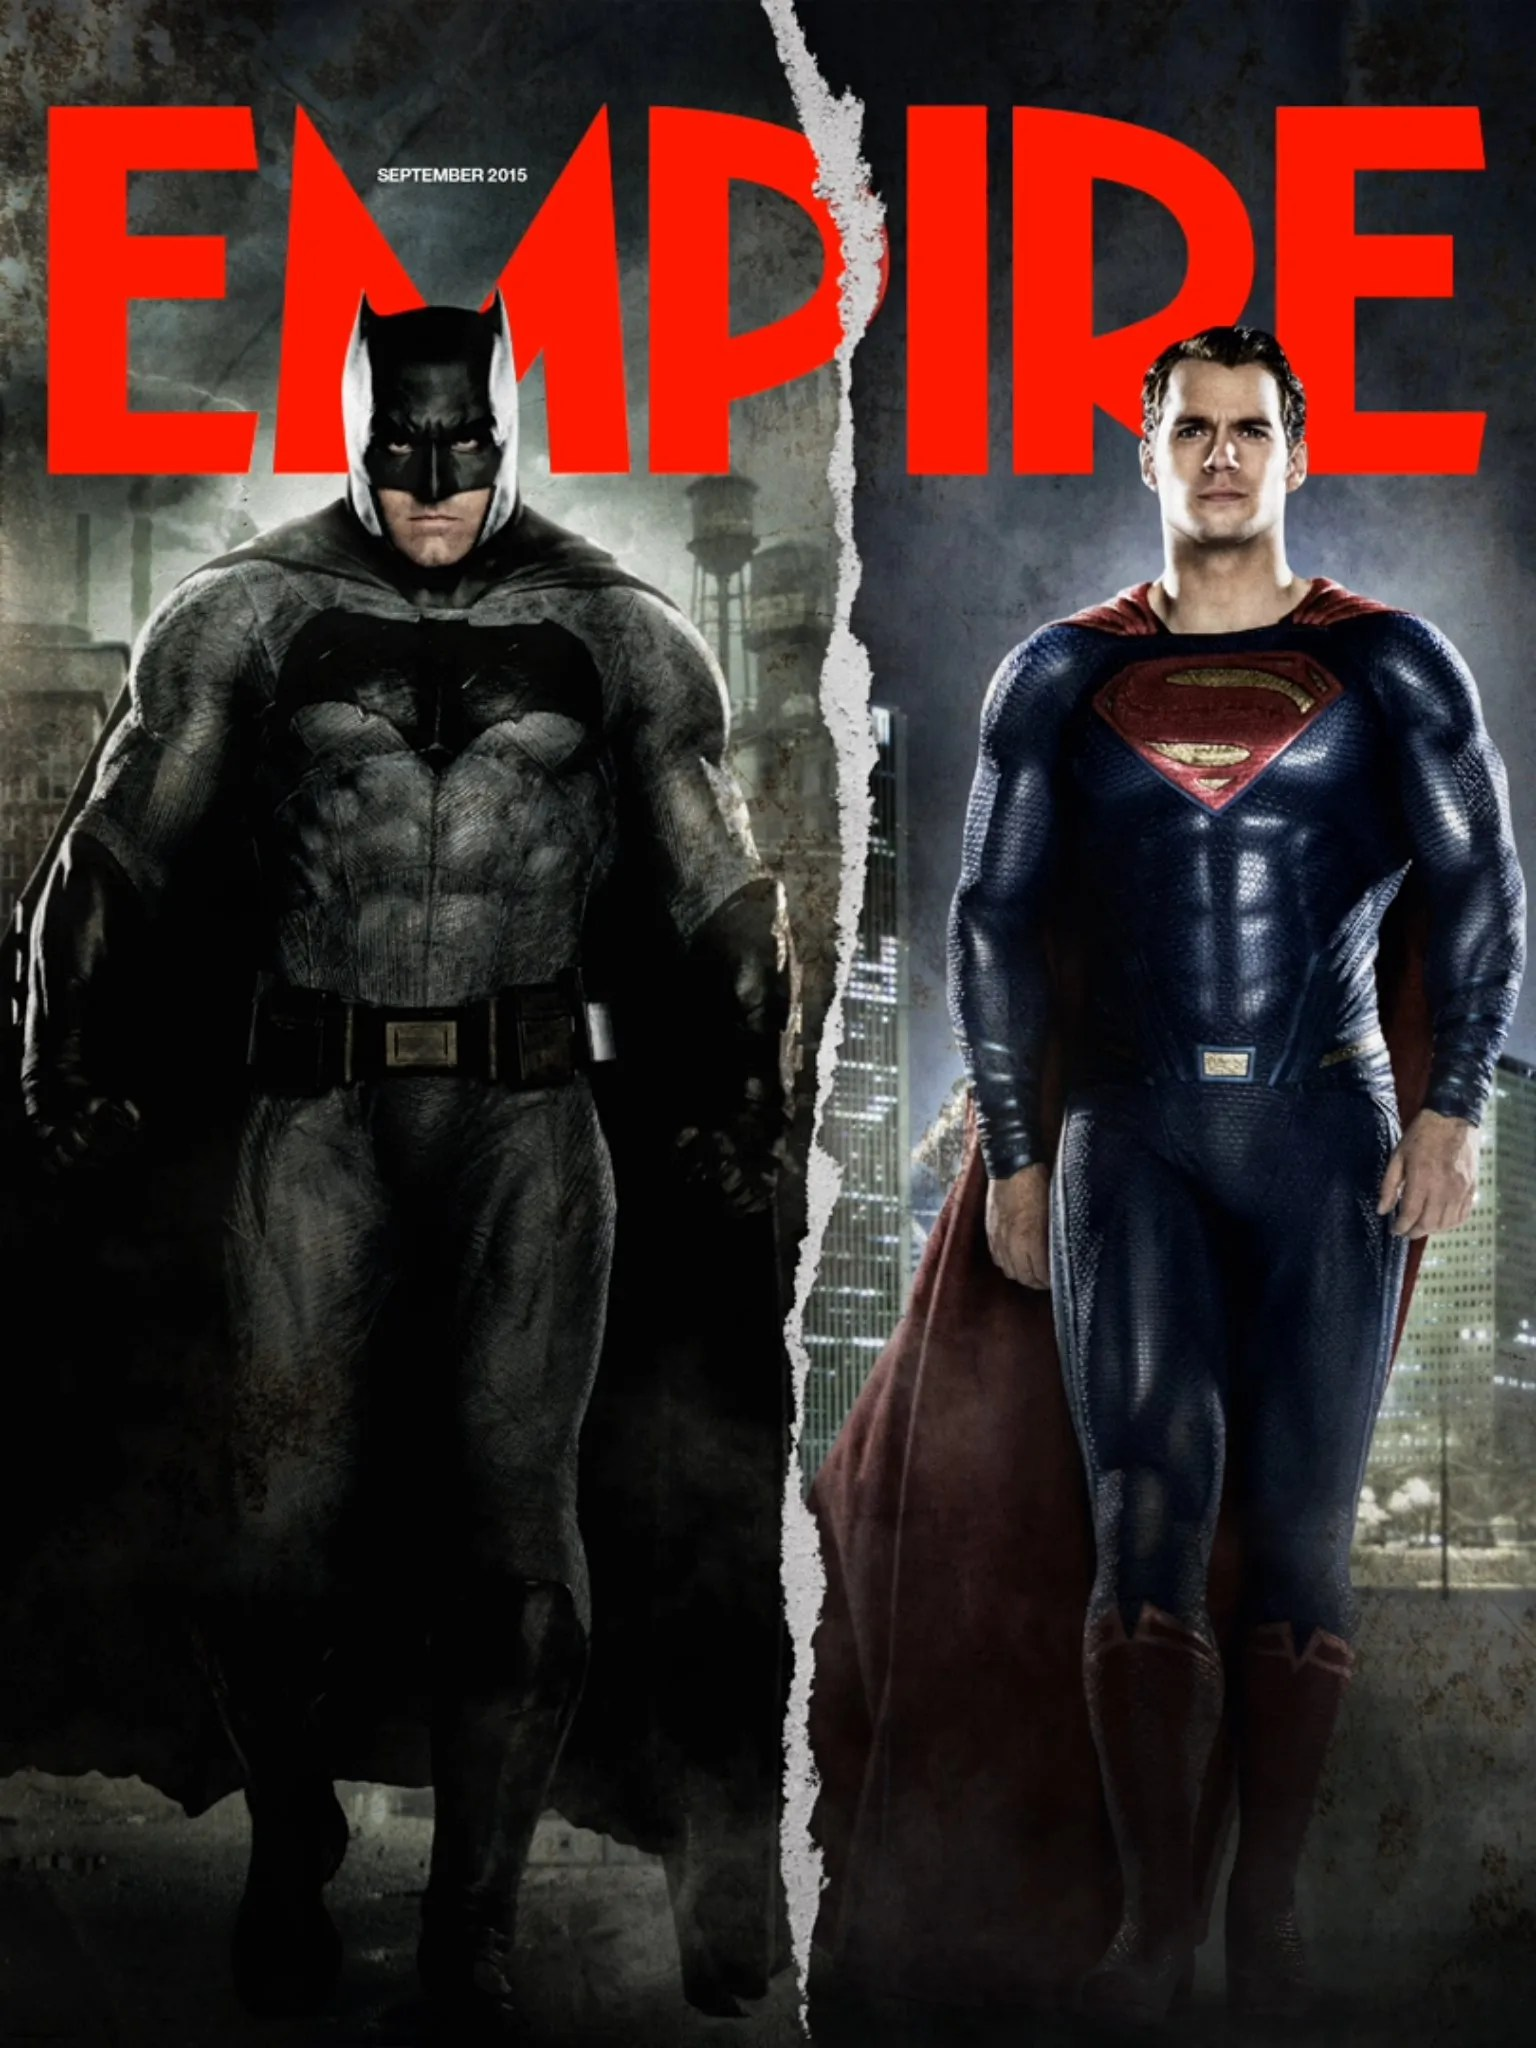 Batman Vs Superman Images Feature Bruce Wayne And Clark